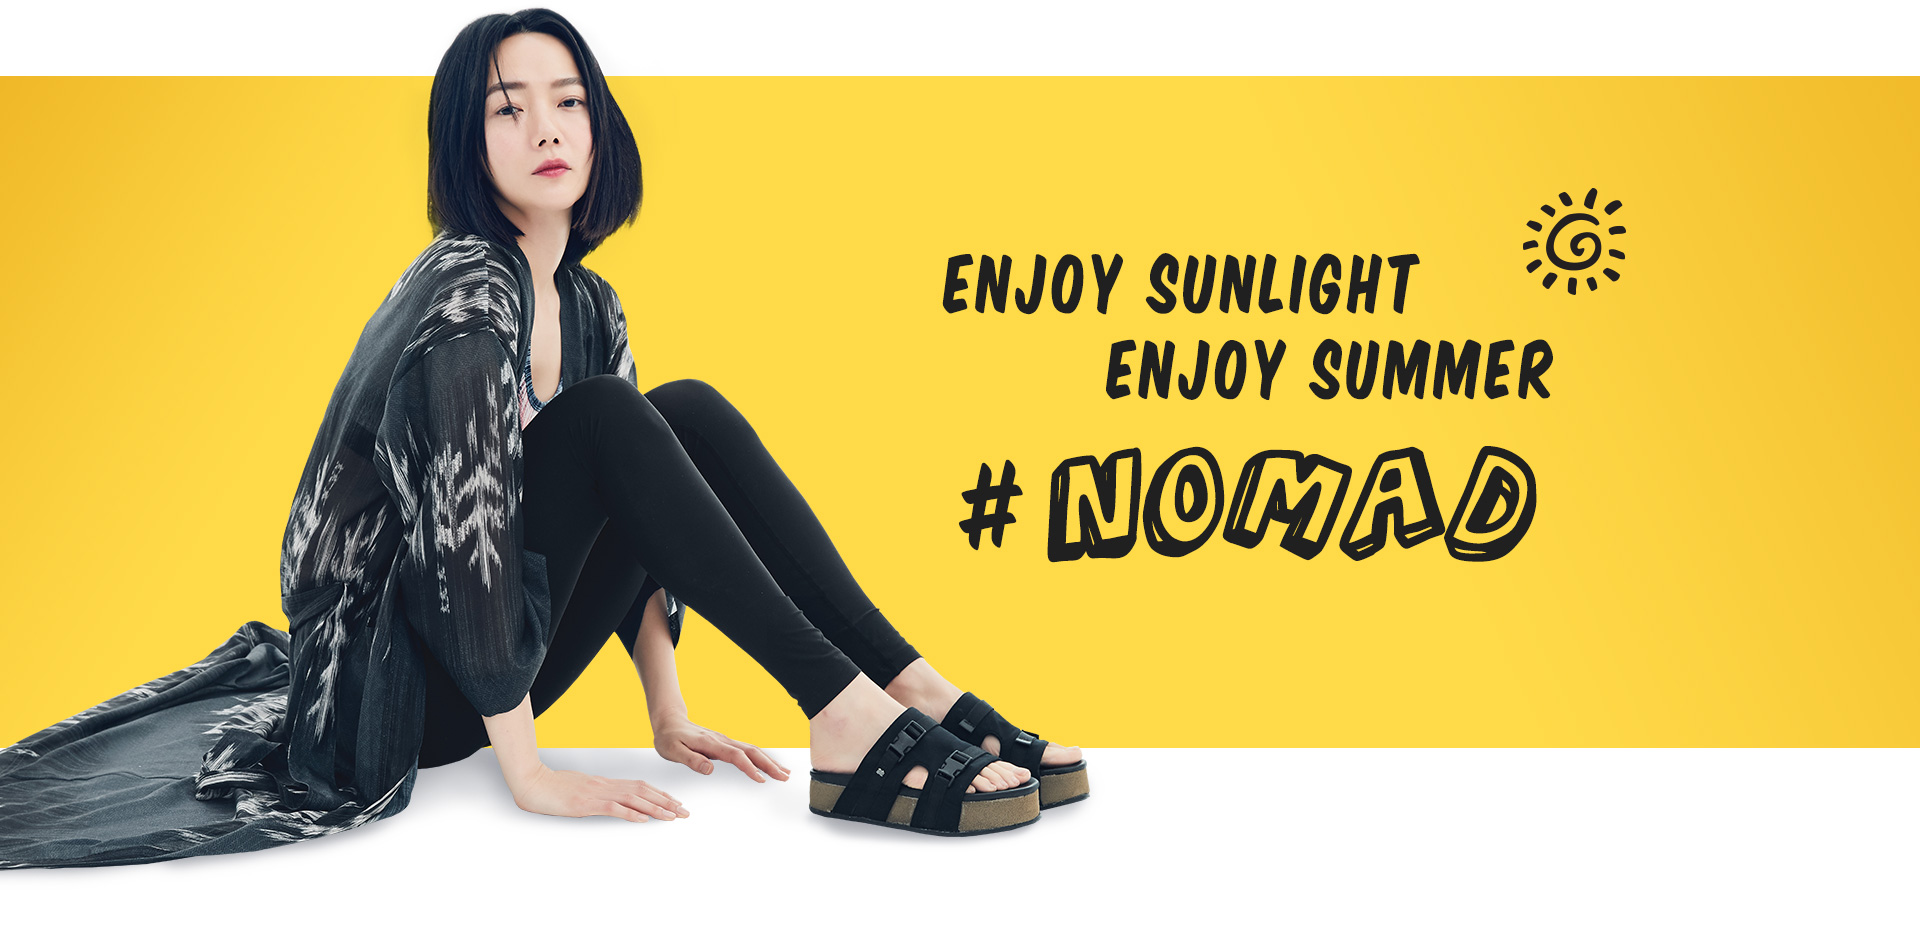 ENJOY SUNLIGHT ENJOY SUMMNER #NOMAD